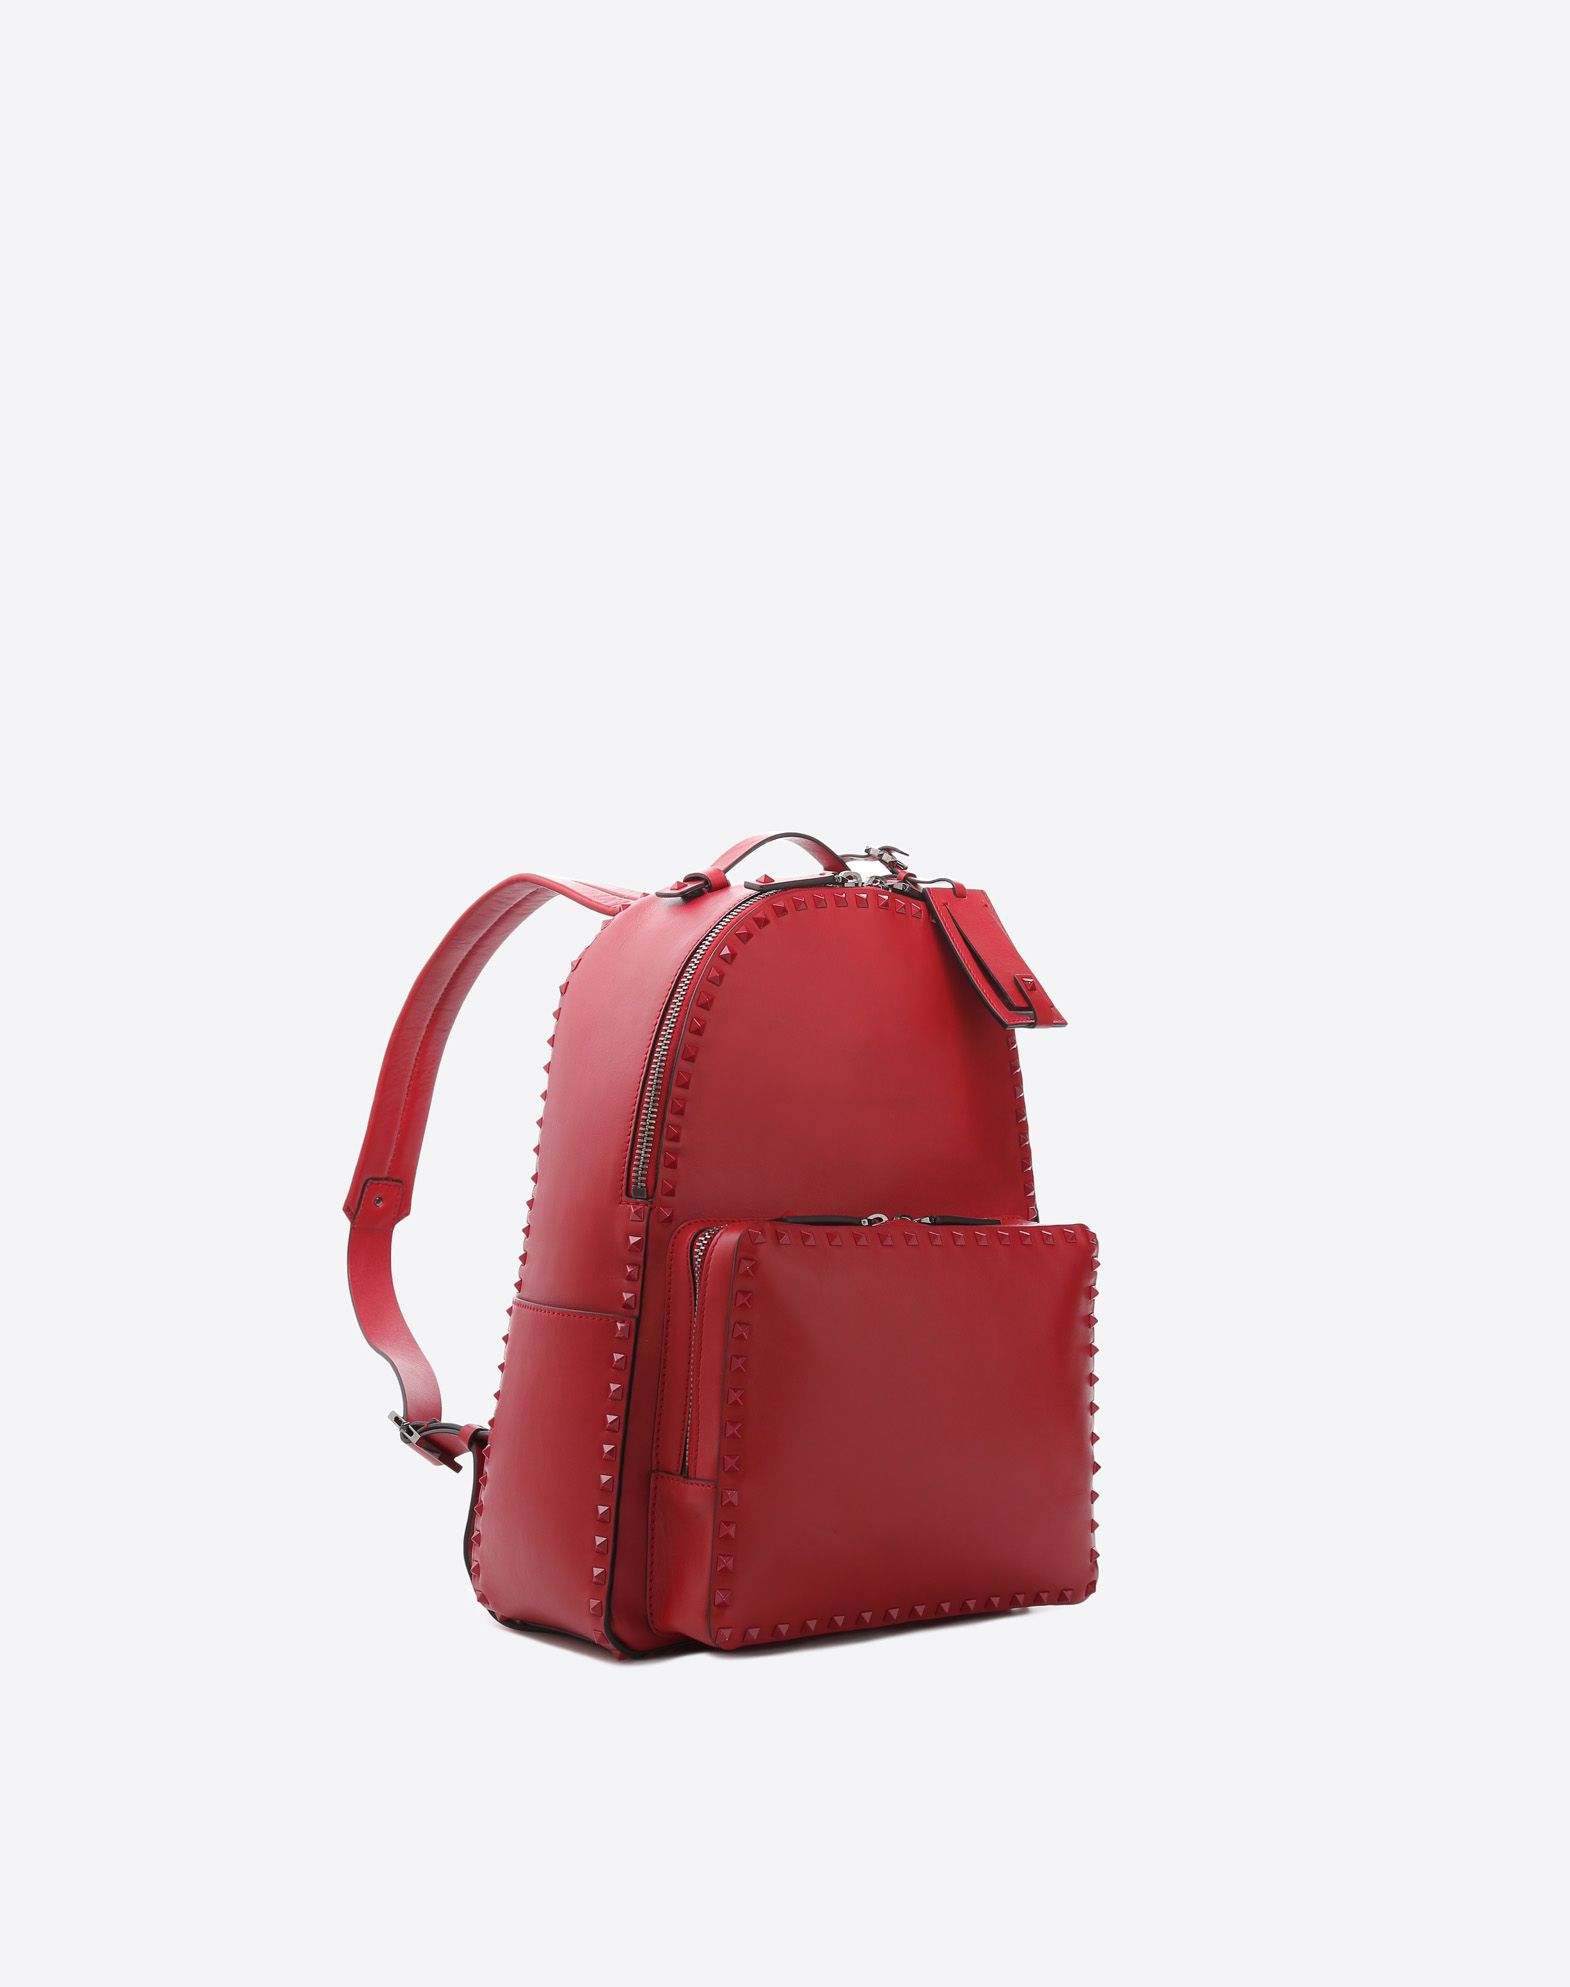 VALENTINO GARAVANI UOMO Rockstud Untitled Rosso Backpack Backpack U r